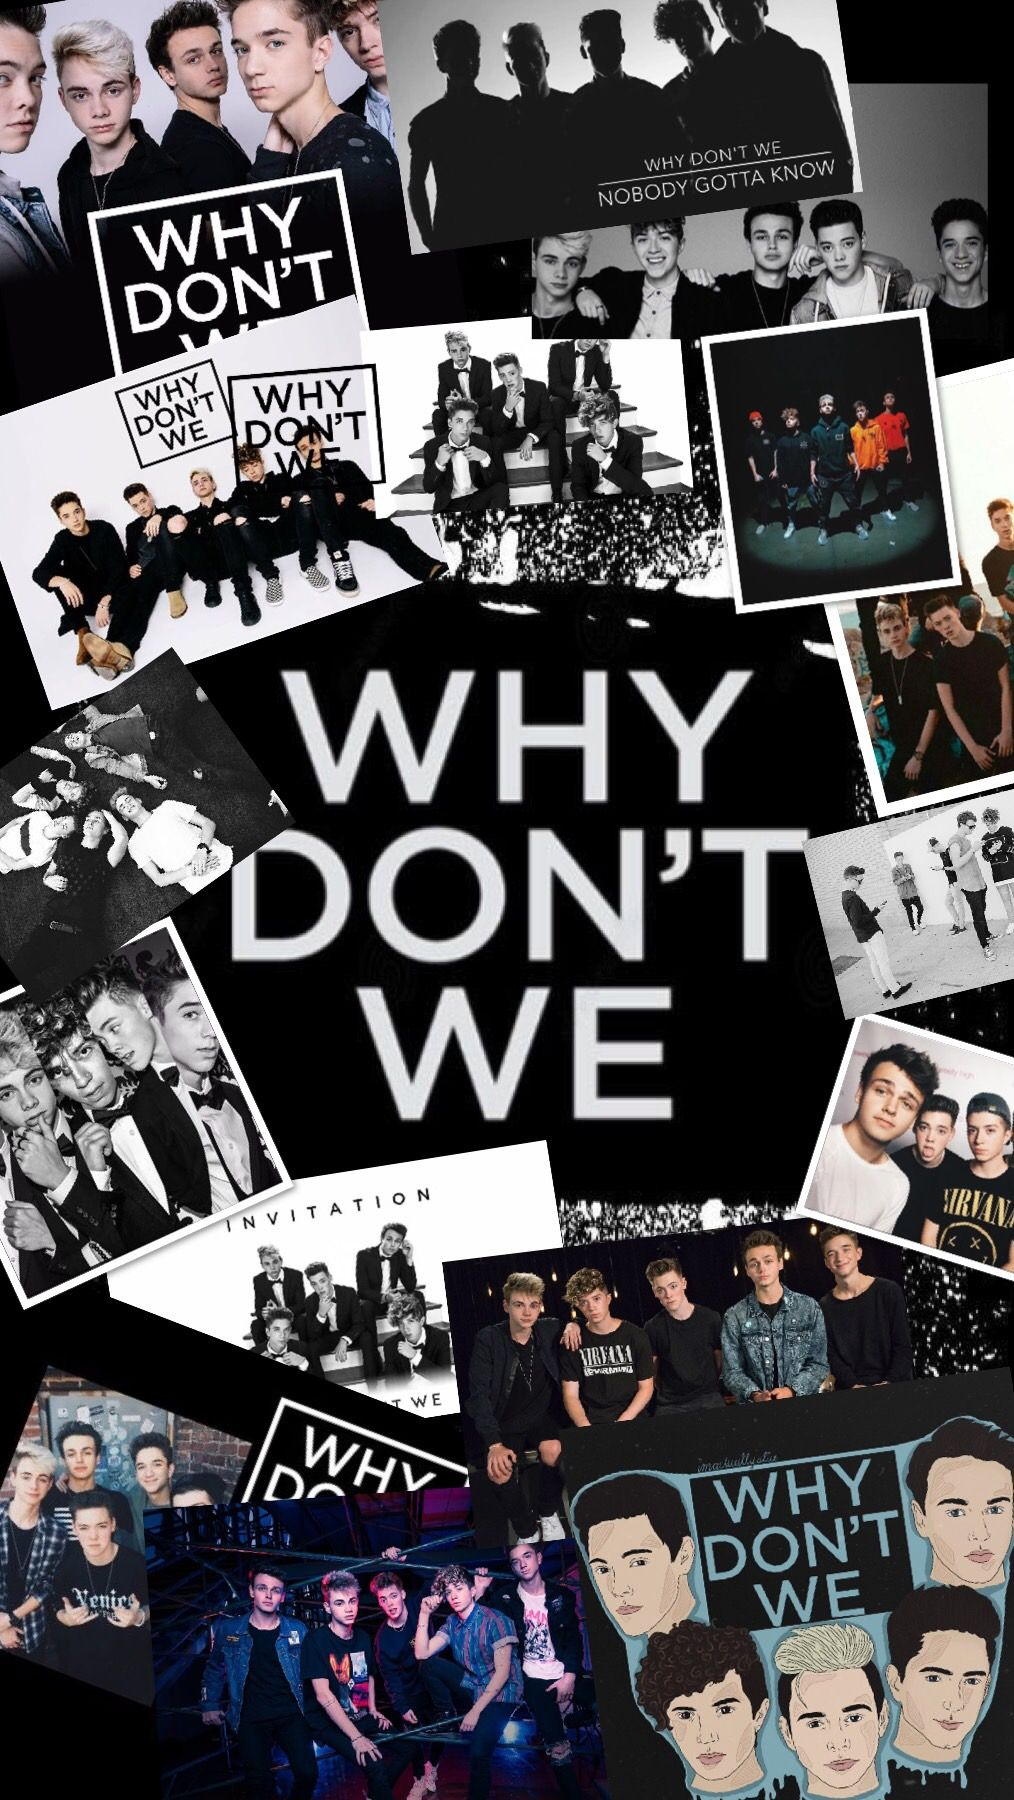 Why Don't We photo collage